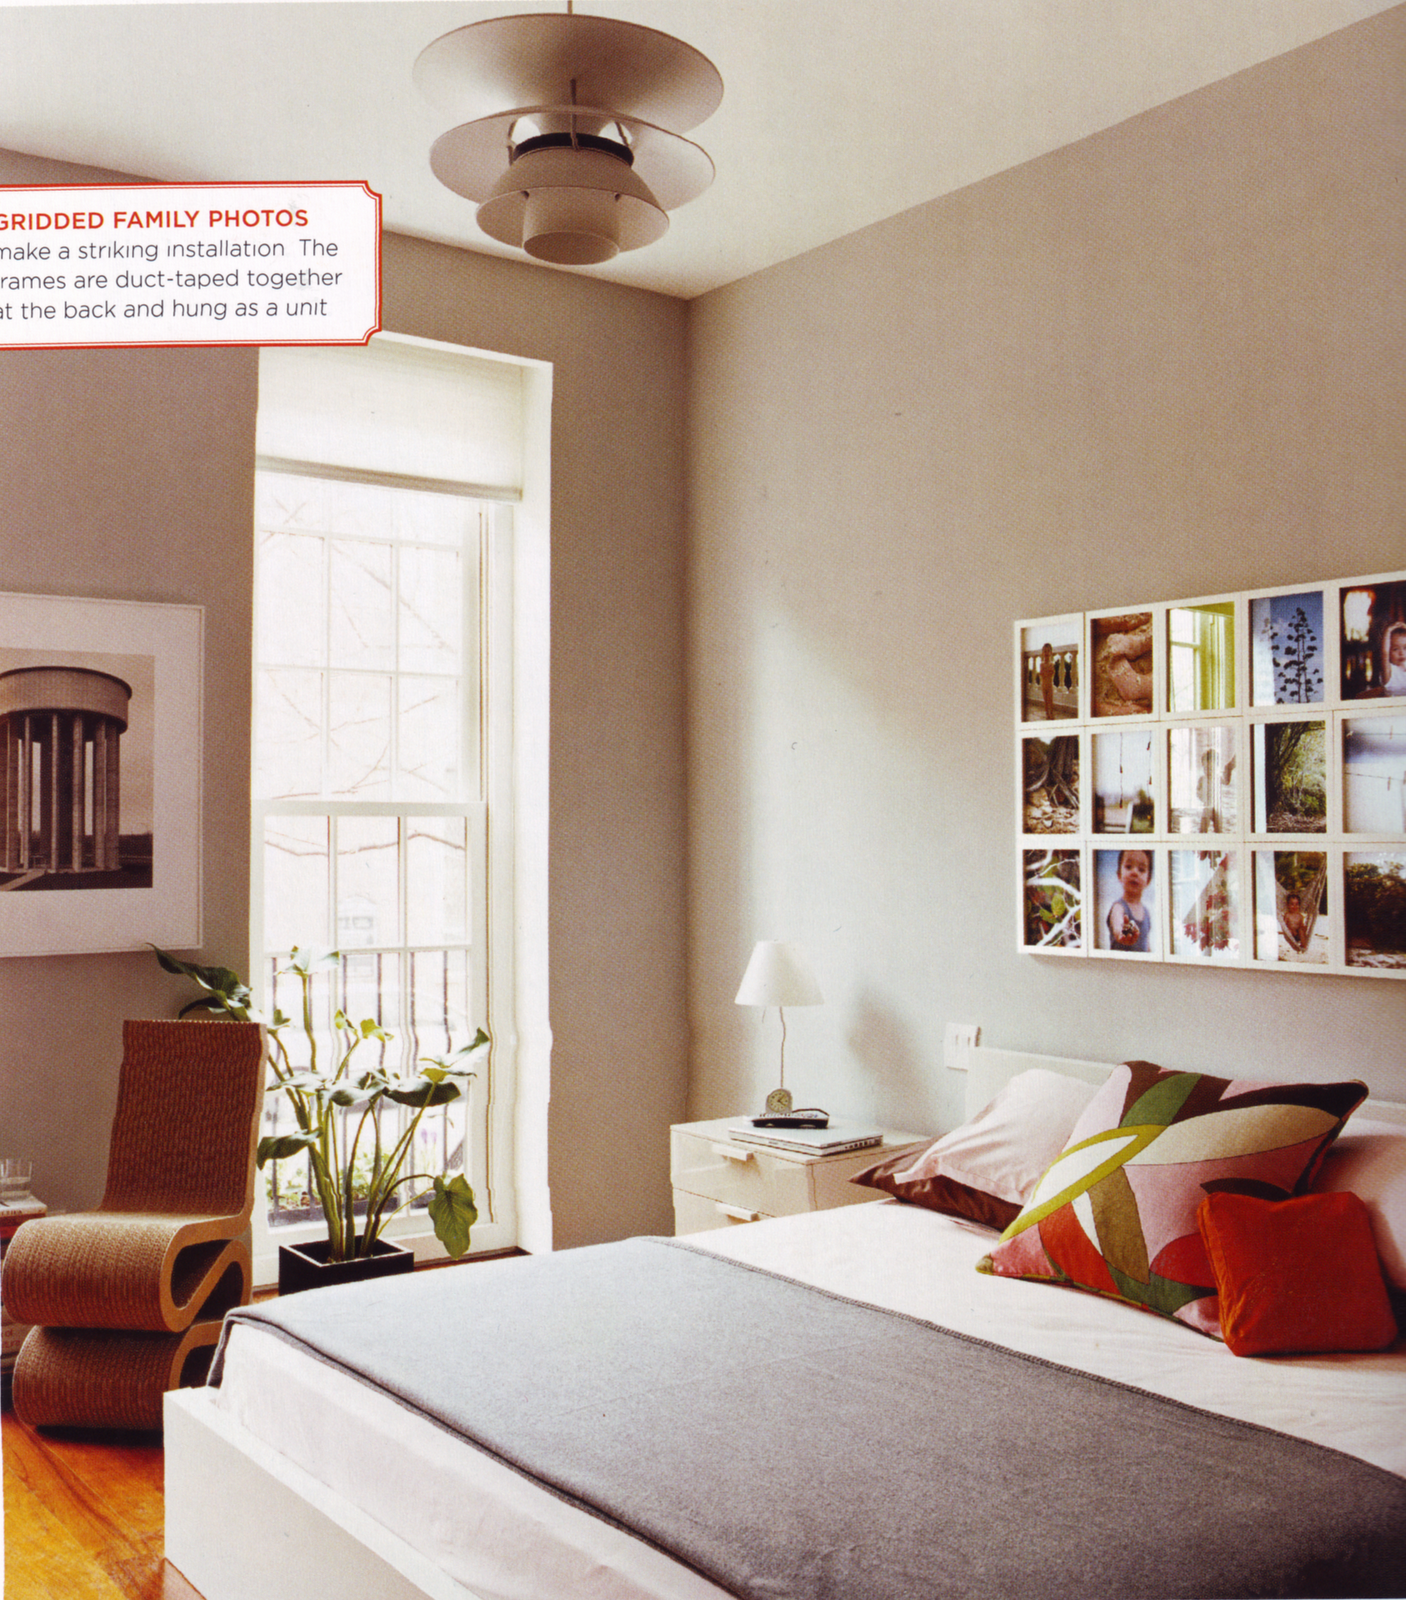 .I like the clean lines of the bedroom.  The photo idea is genious!